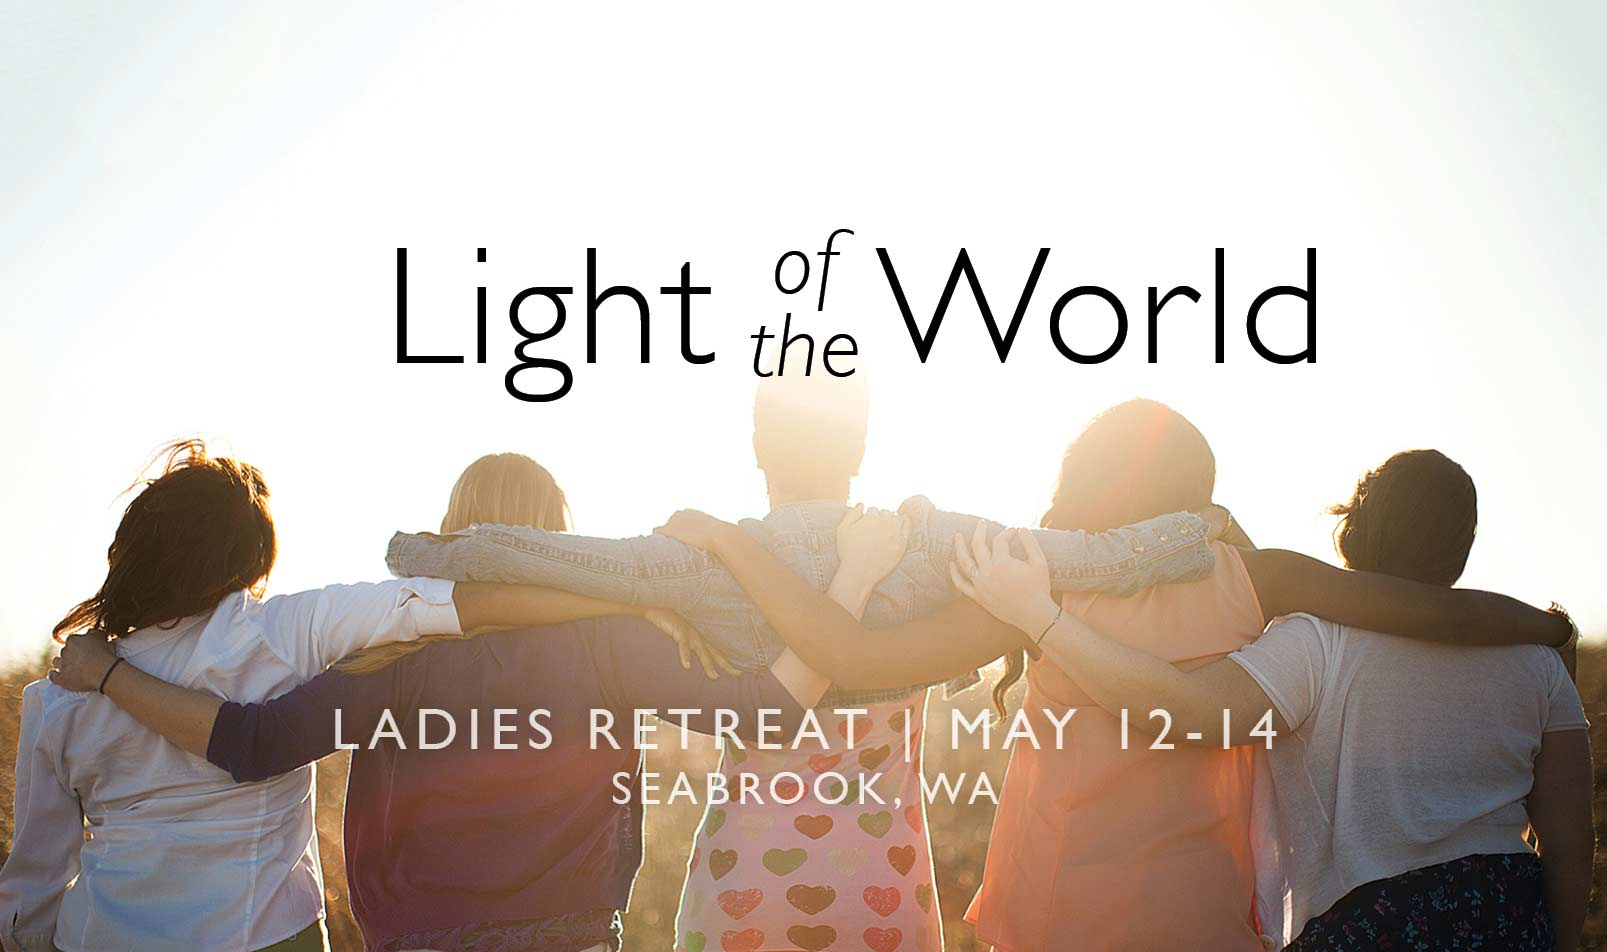 Westside Baptist Church Ladies Retreat—May 12-14